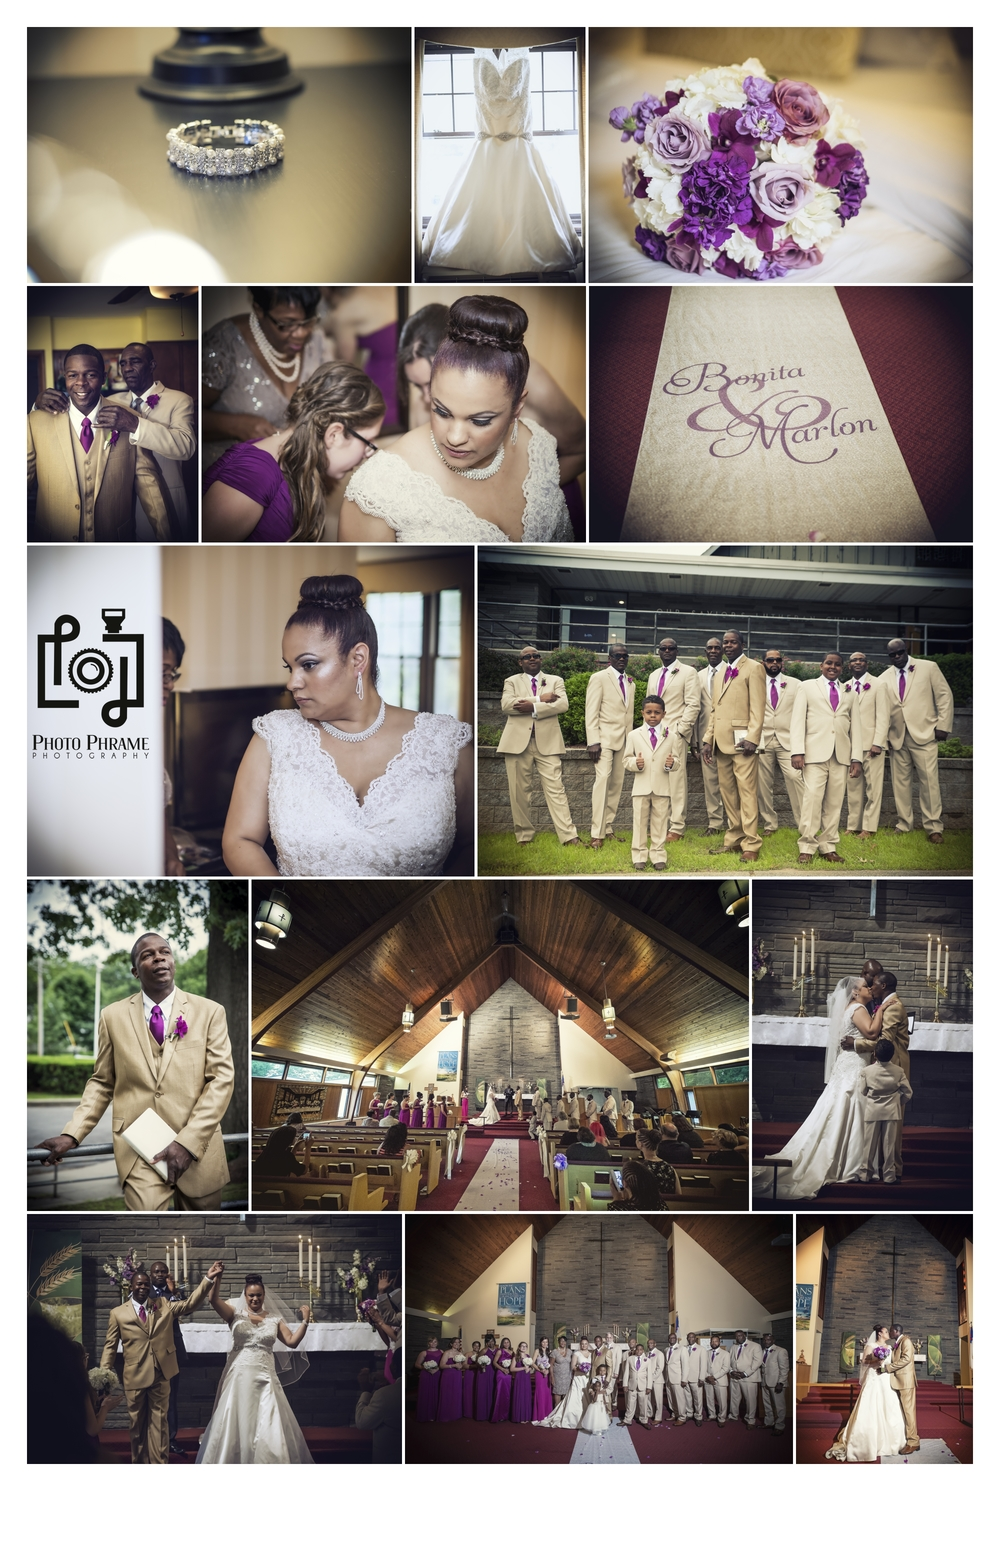 Professional Wedding Photography in Albany, NY